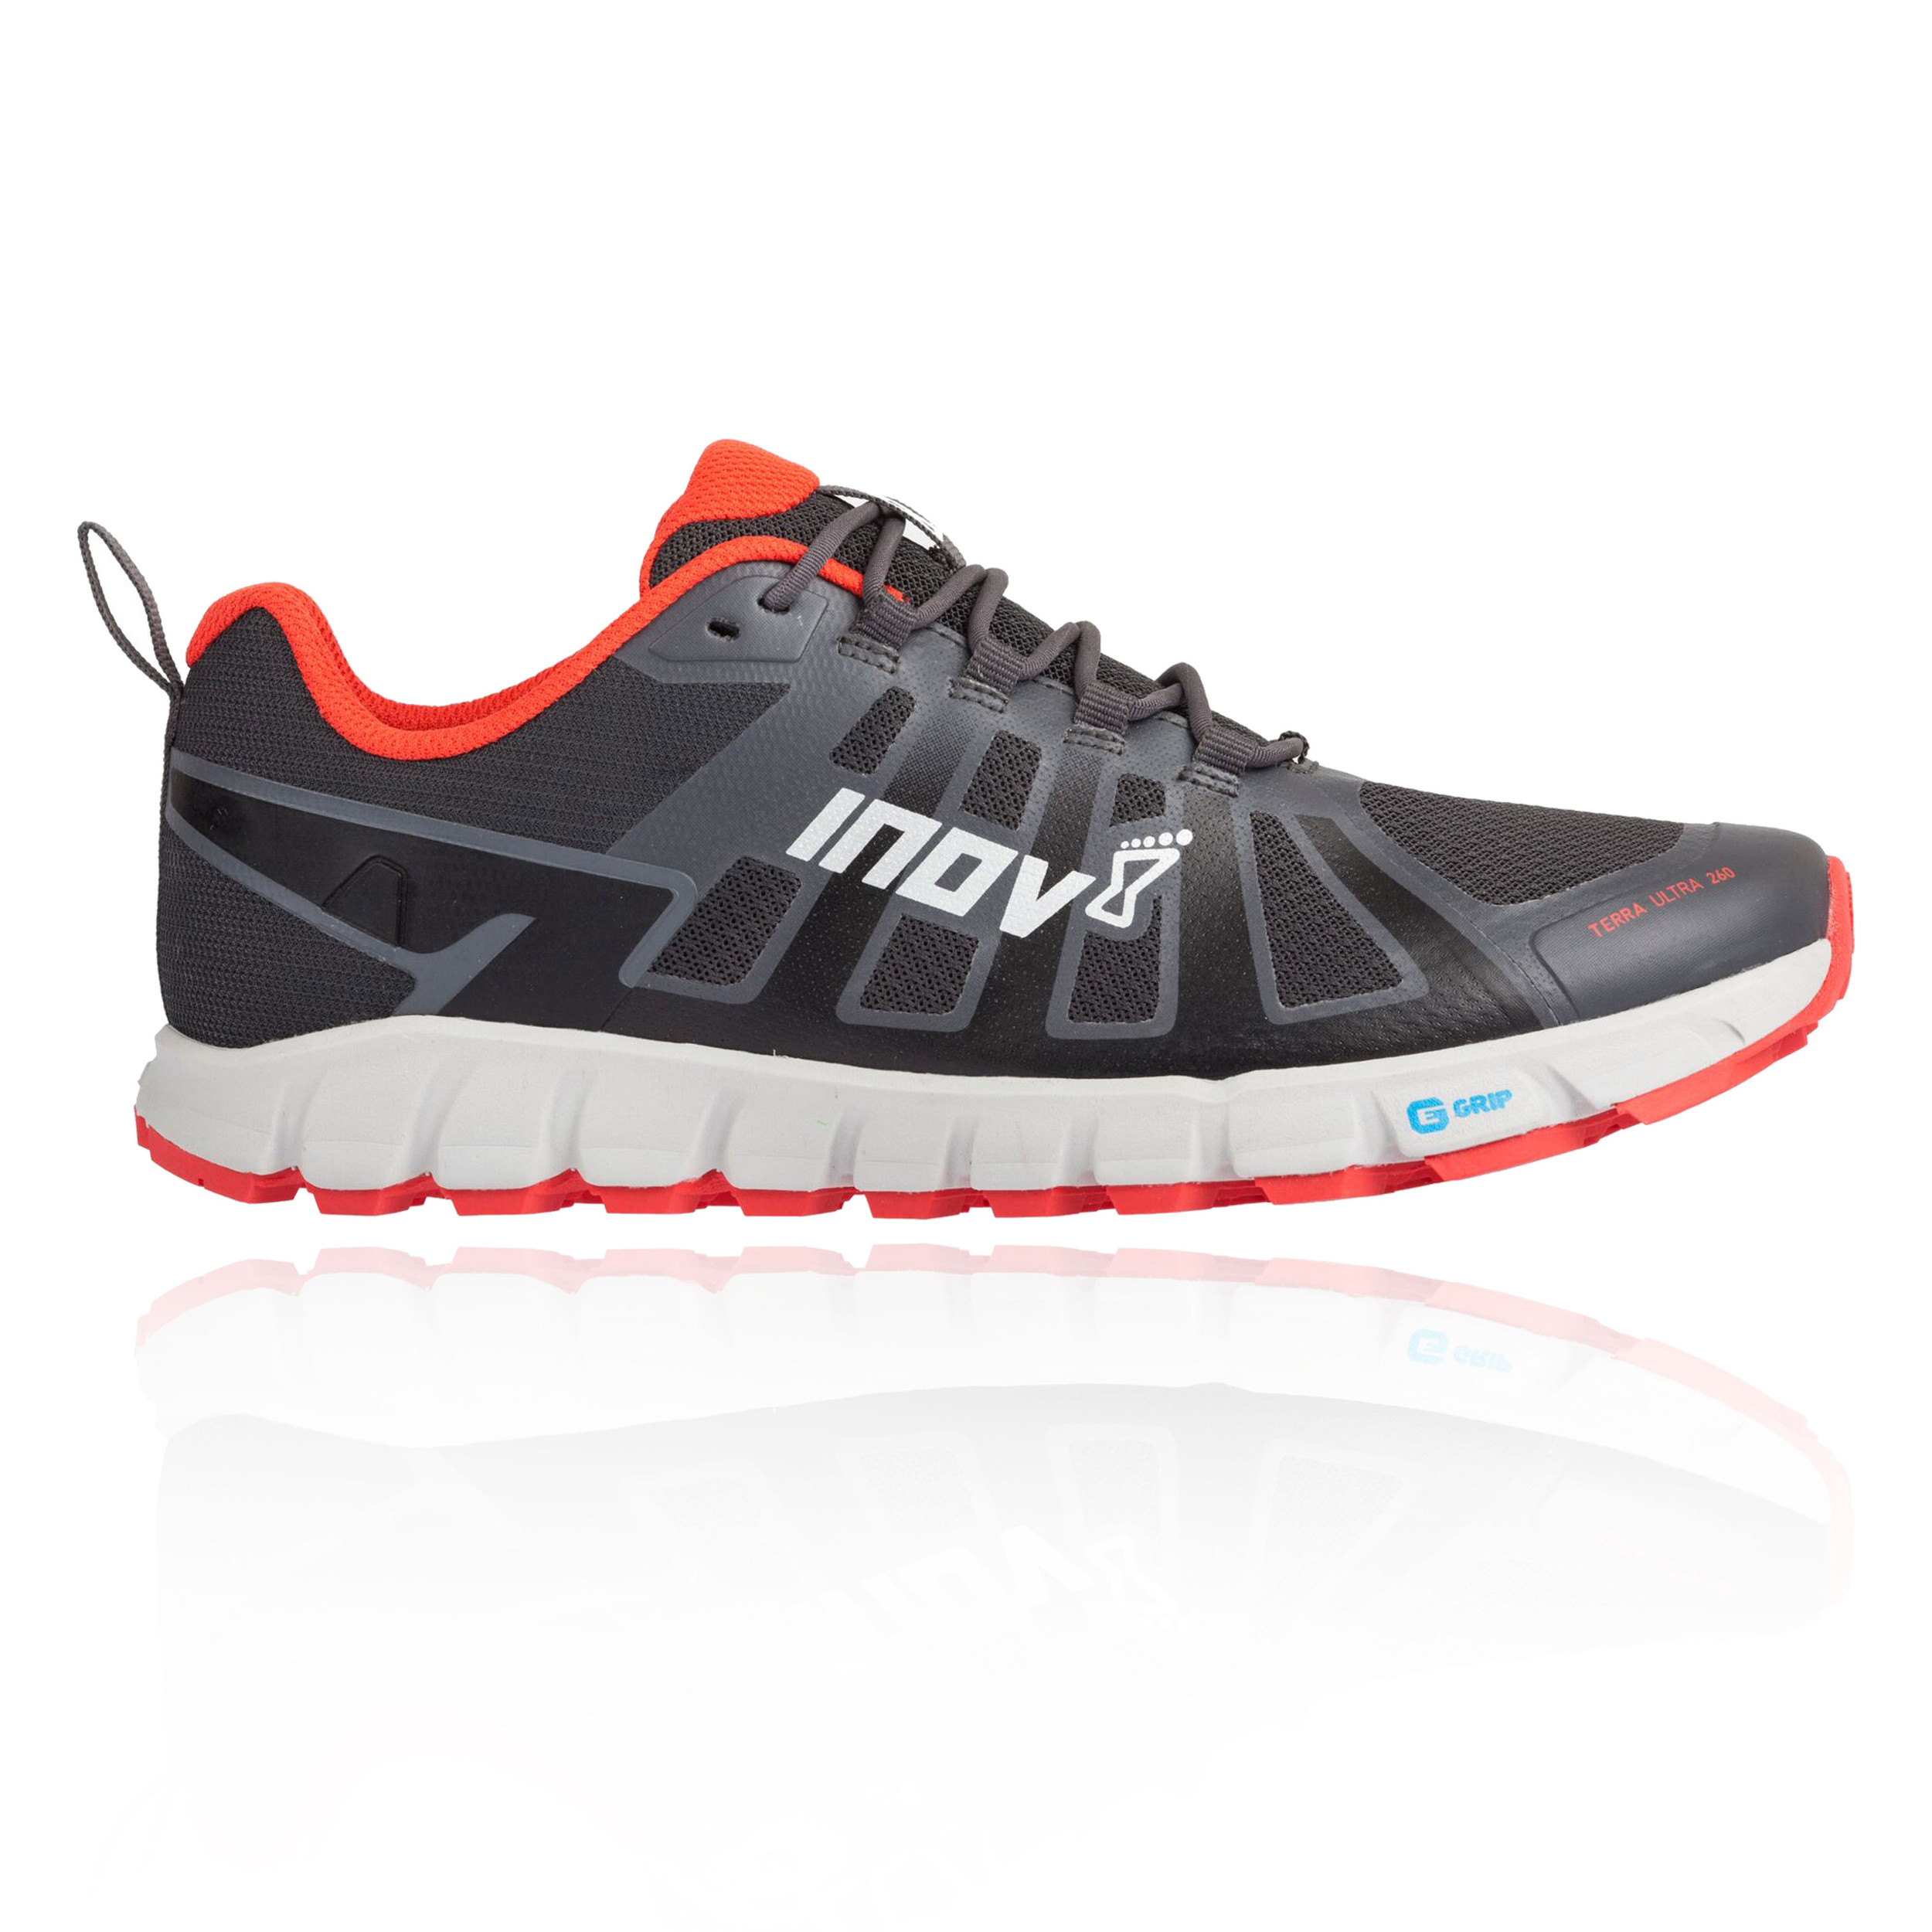 Course De Terraultra Inov8 Pied Pied Trail 260 Chaussures À Hommes OqAvF